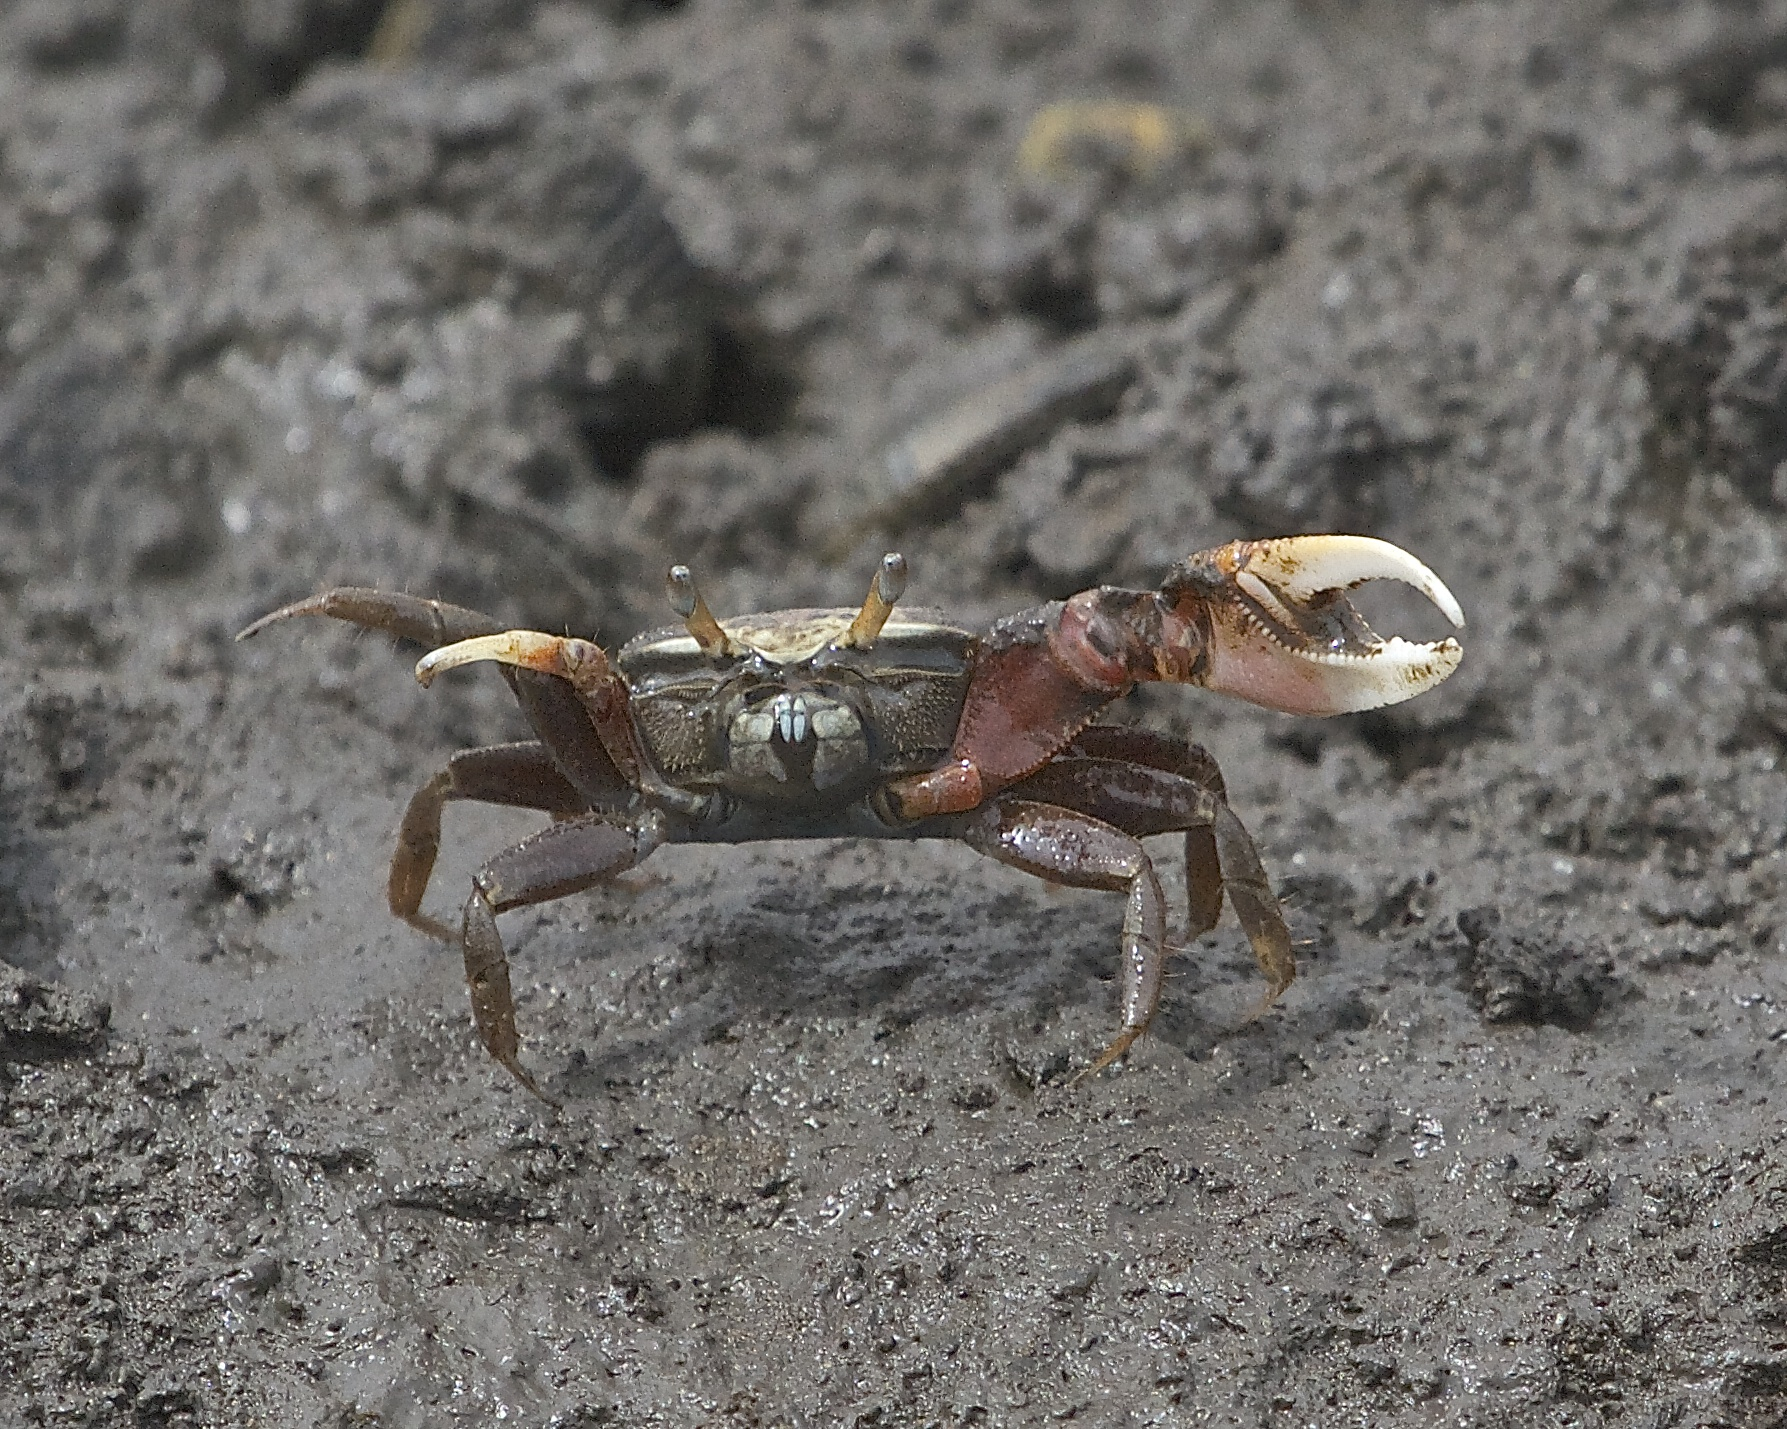 Well Fiddle Dee Dee, time to go says the fiddler crab!